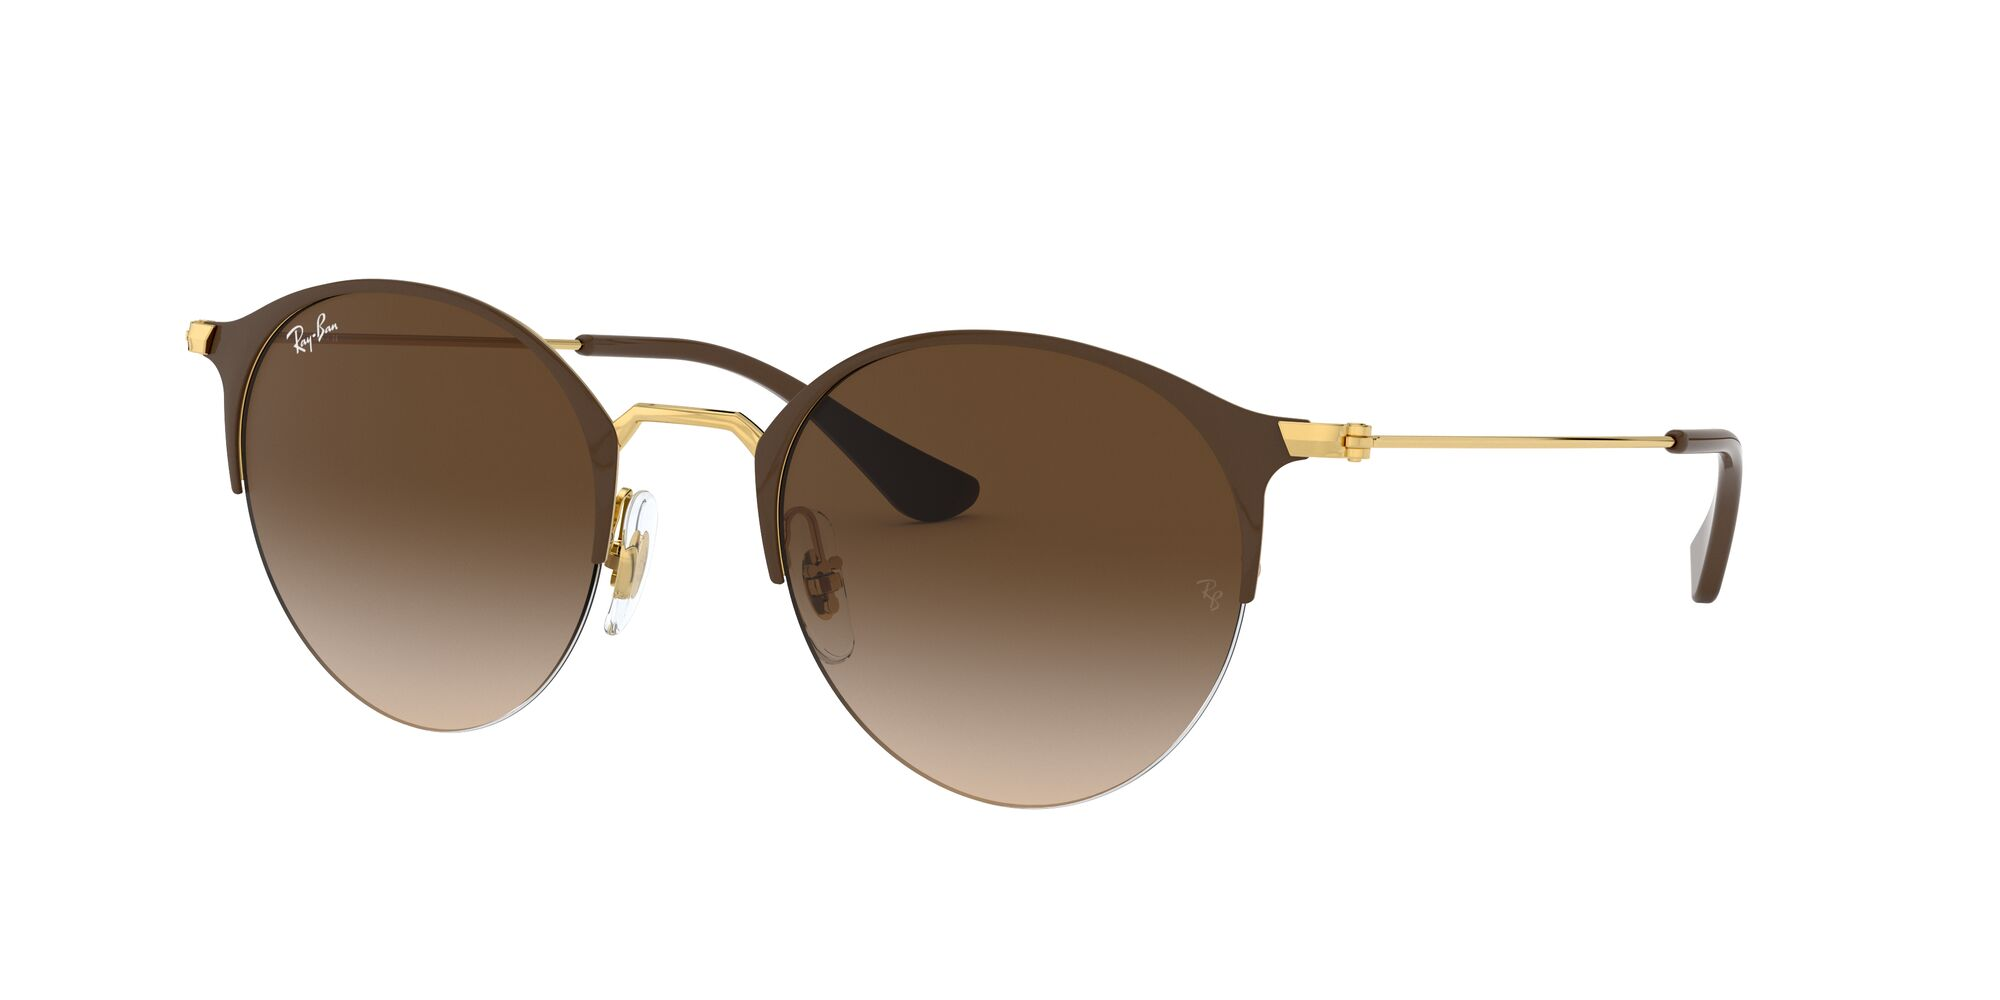 Angle_Left01 Ray-Ban Ray-Ban 0RB3578 900913 51/22 Zilver, Bruin/Bruin